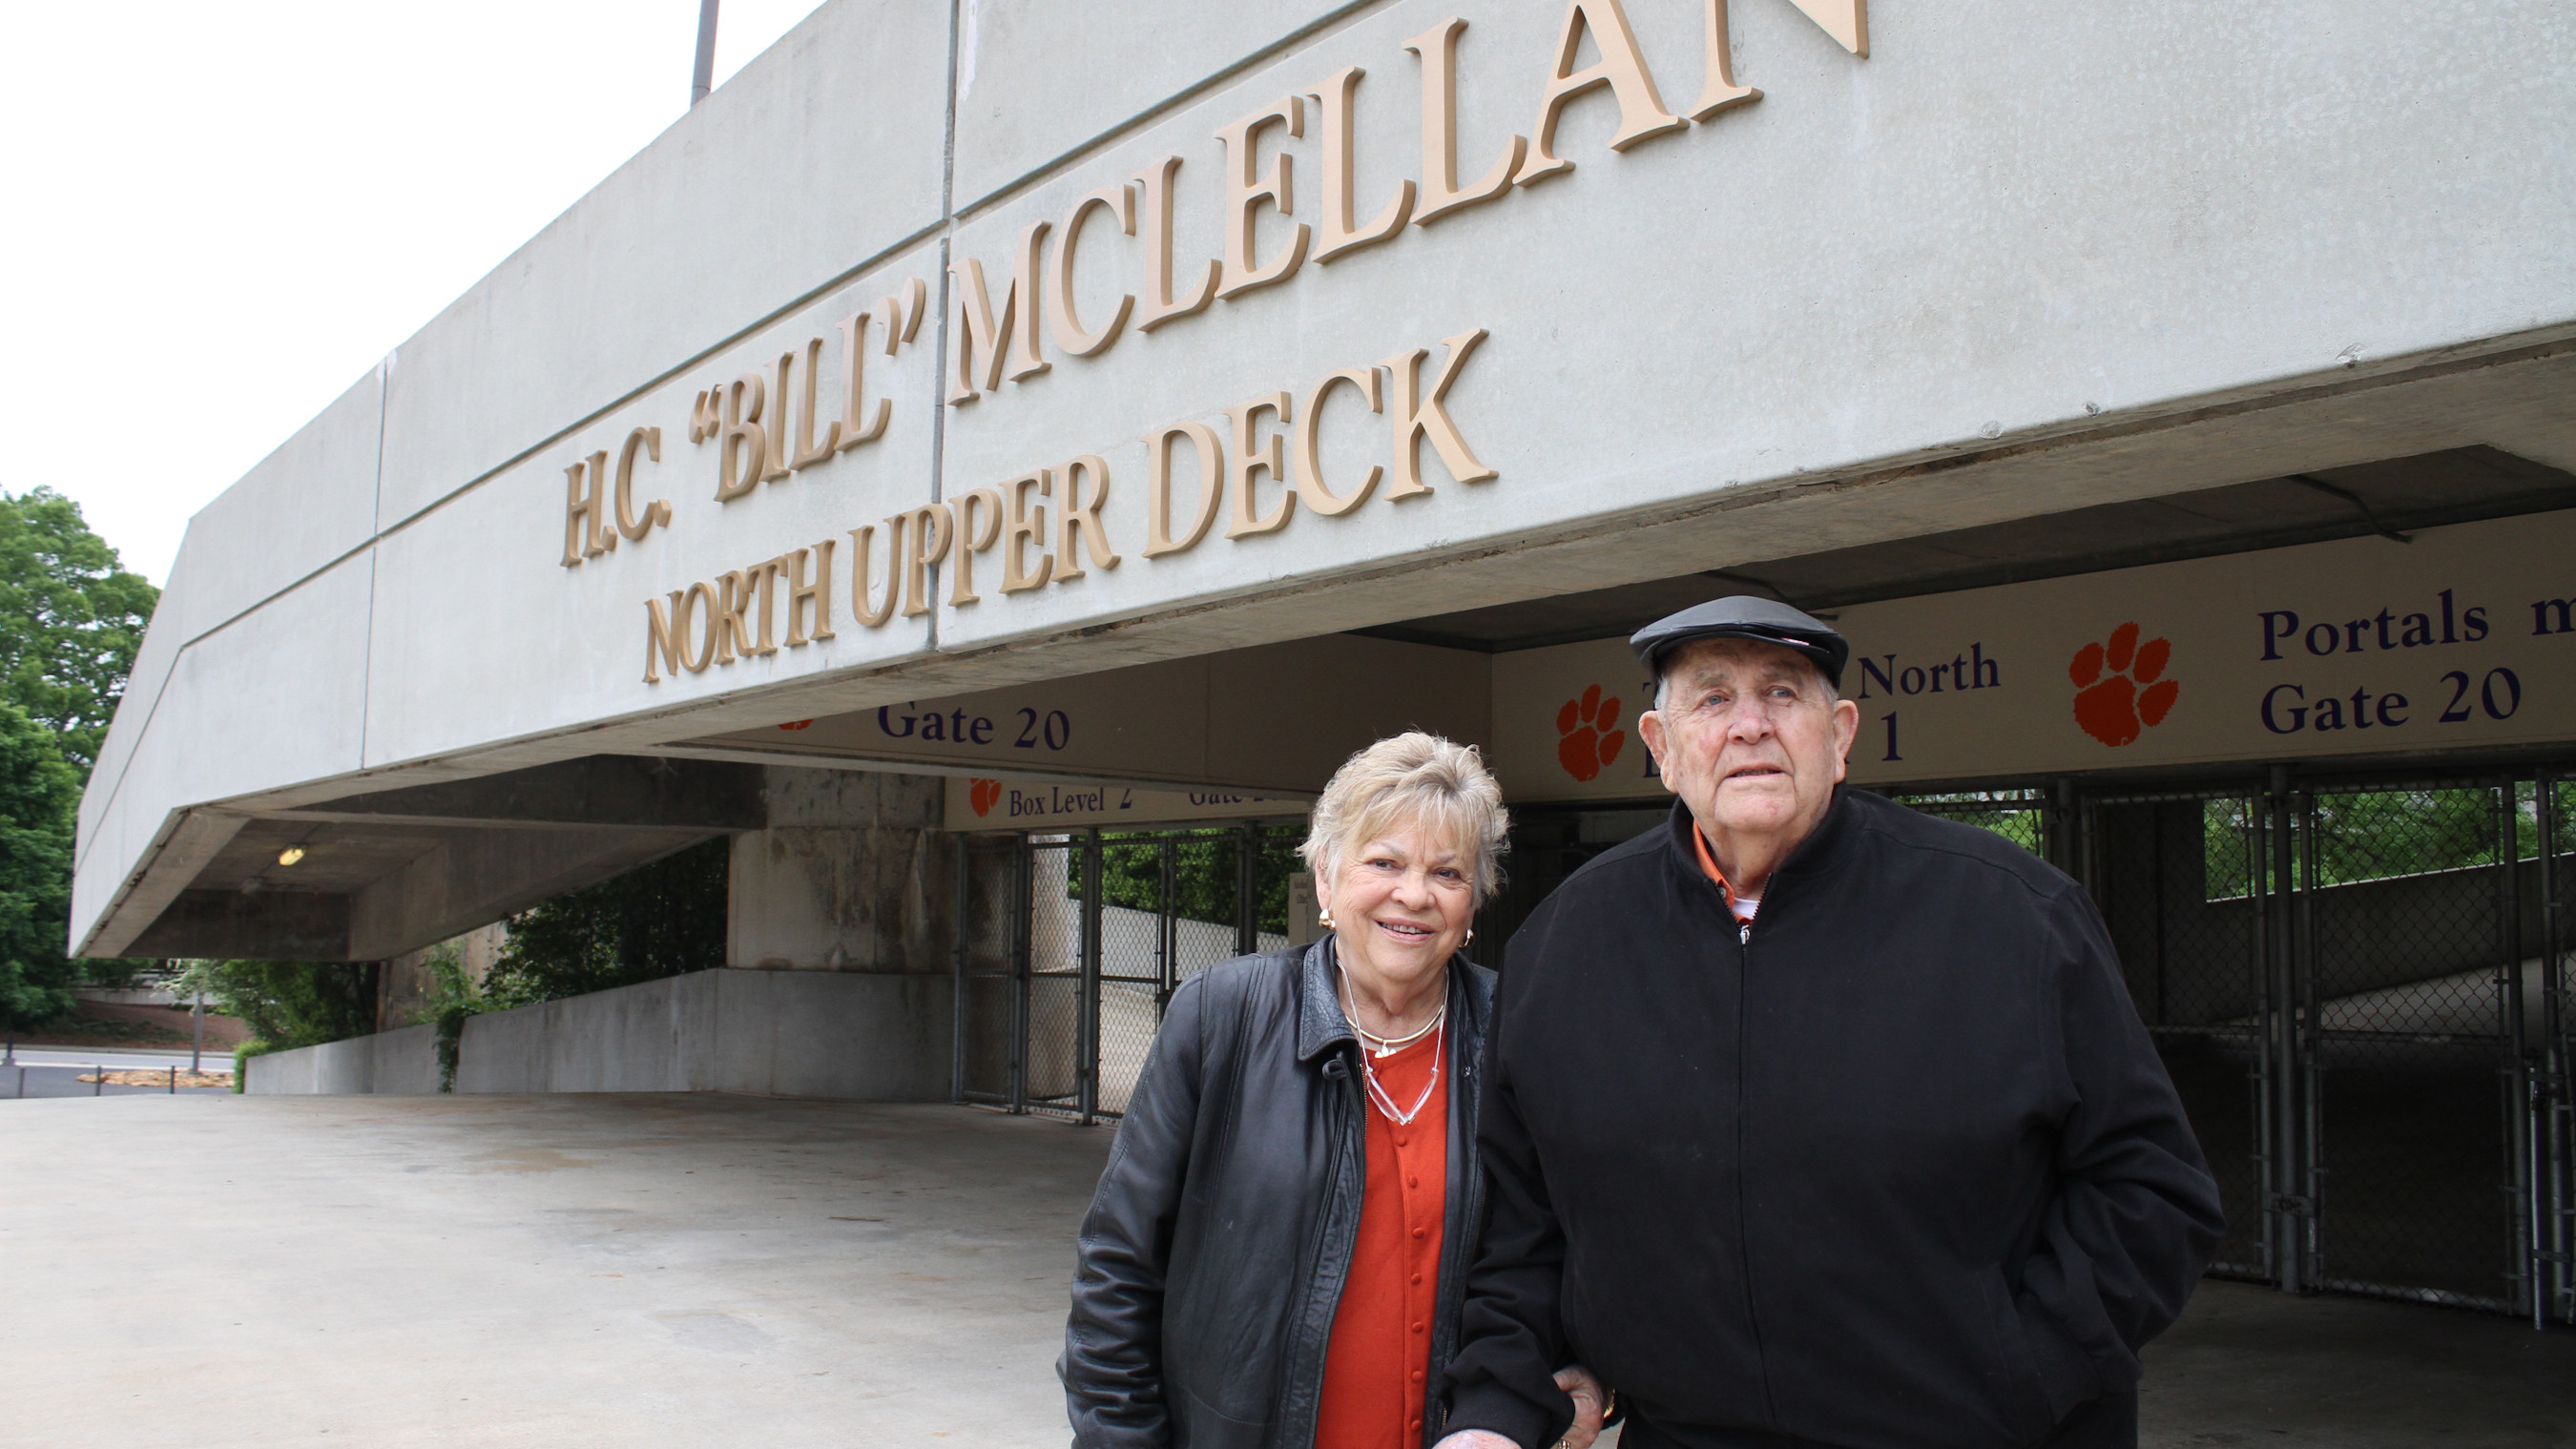 EXCLUSIVE: North Upper Deck Named for Former AD McLellan